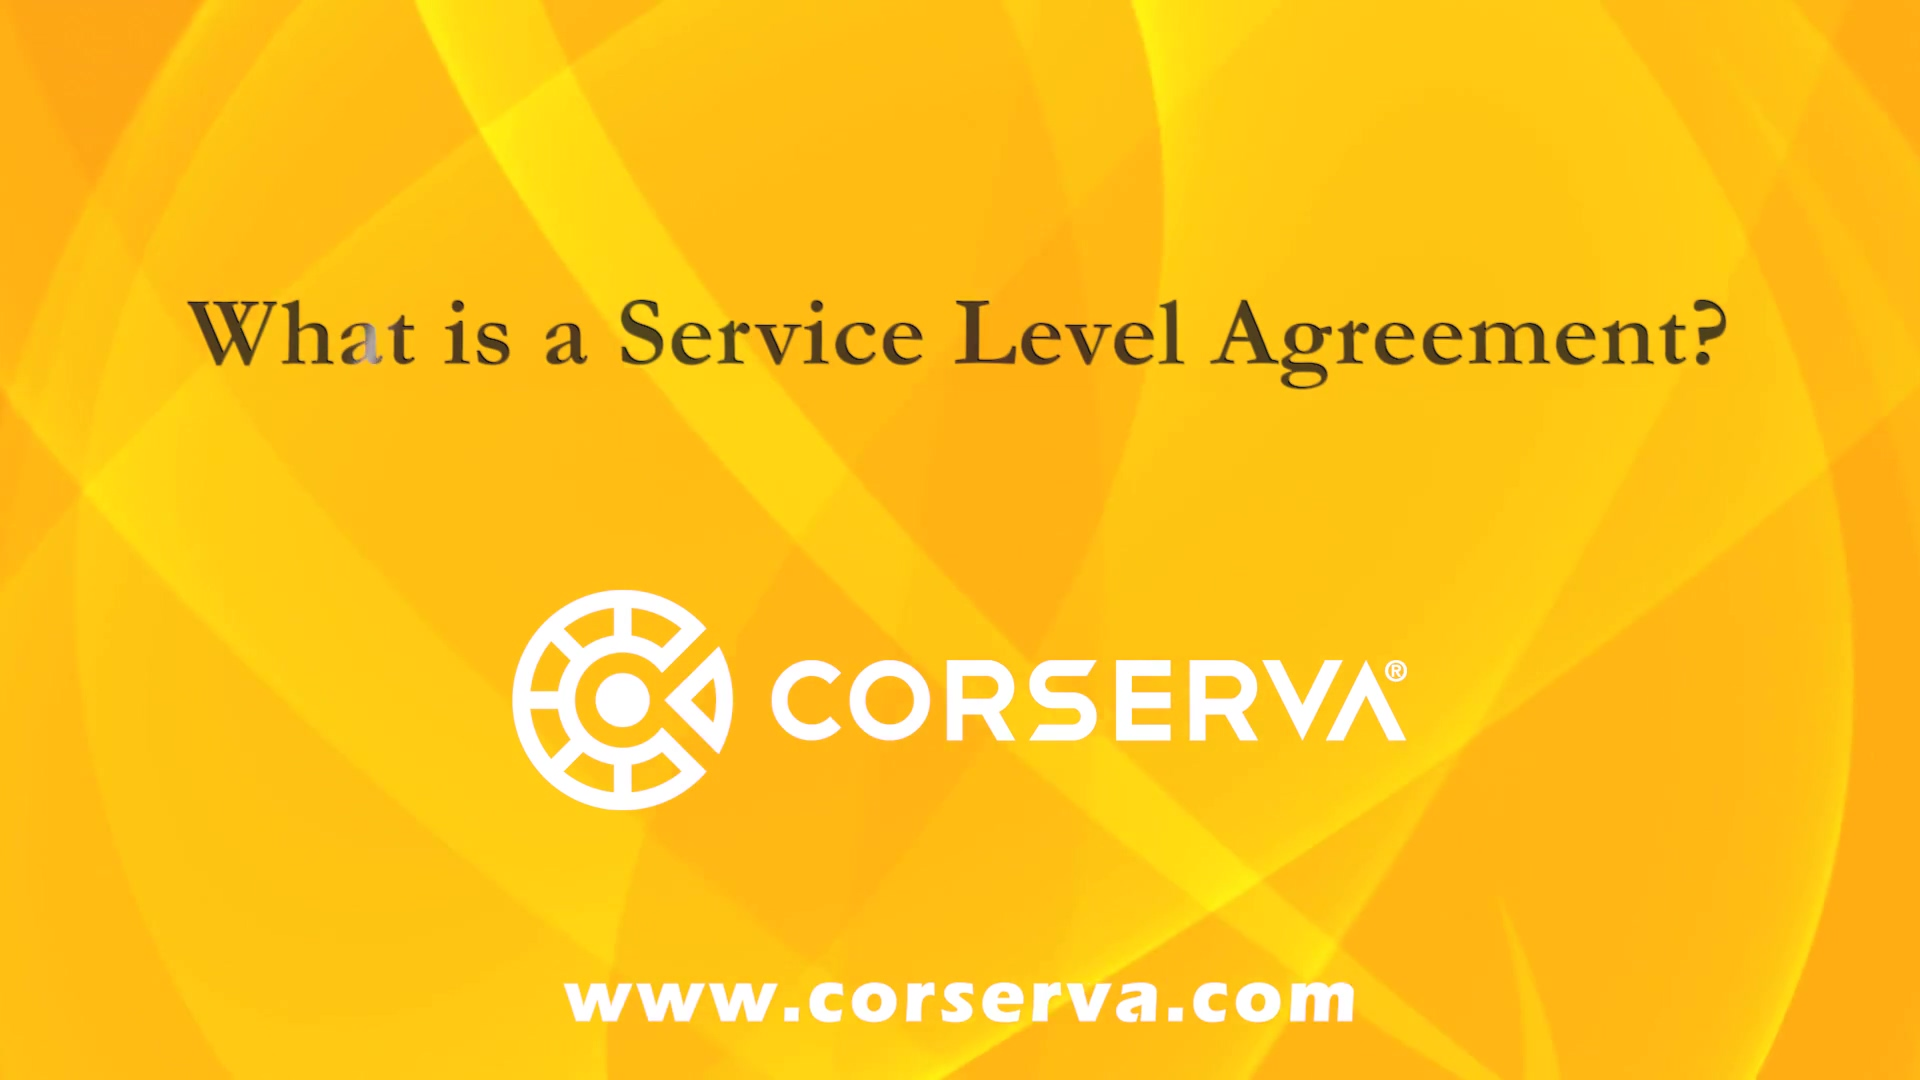 service-level-agreement-mic